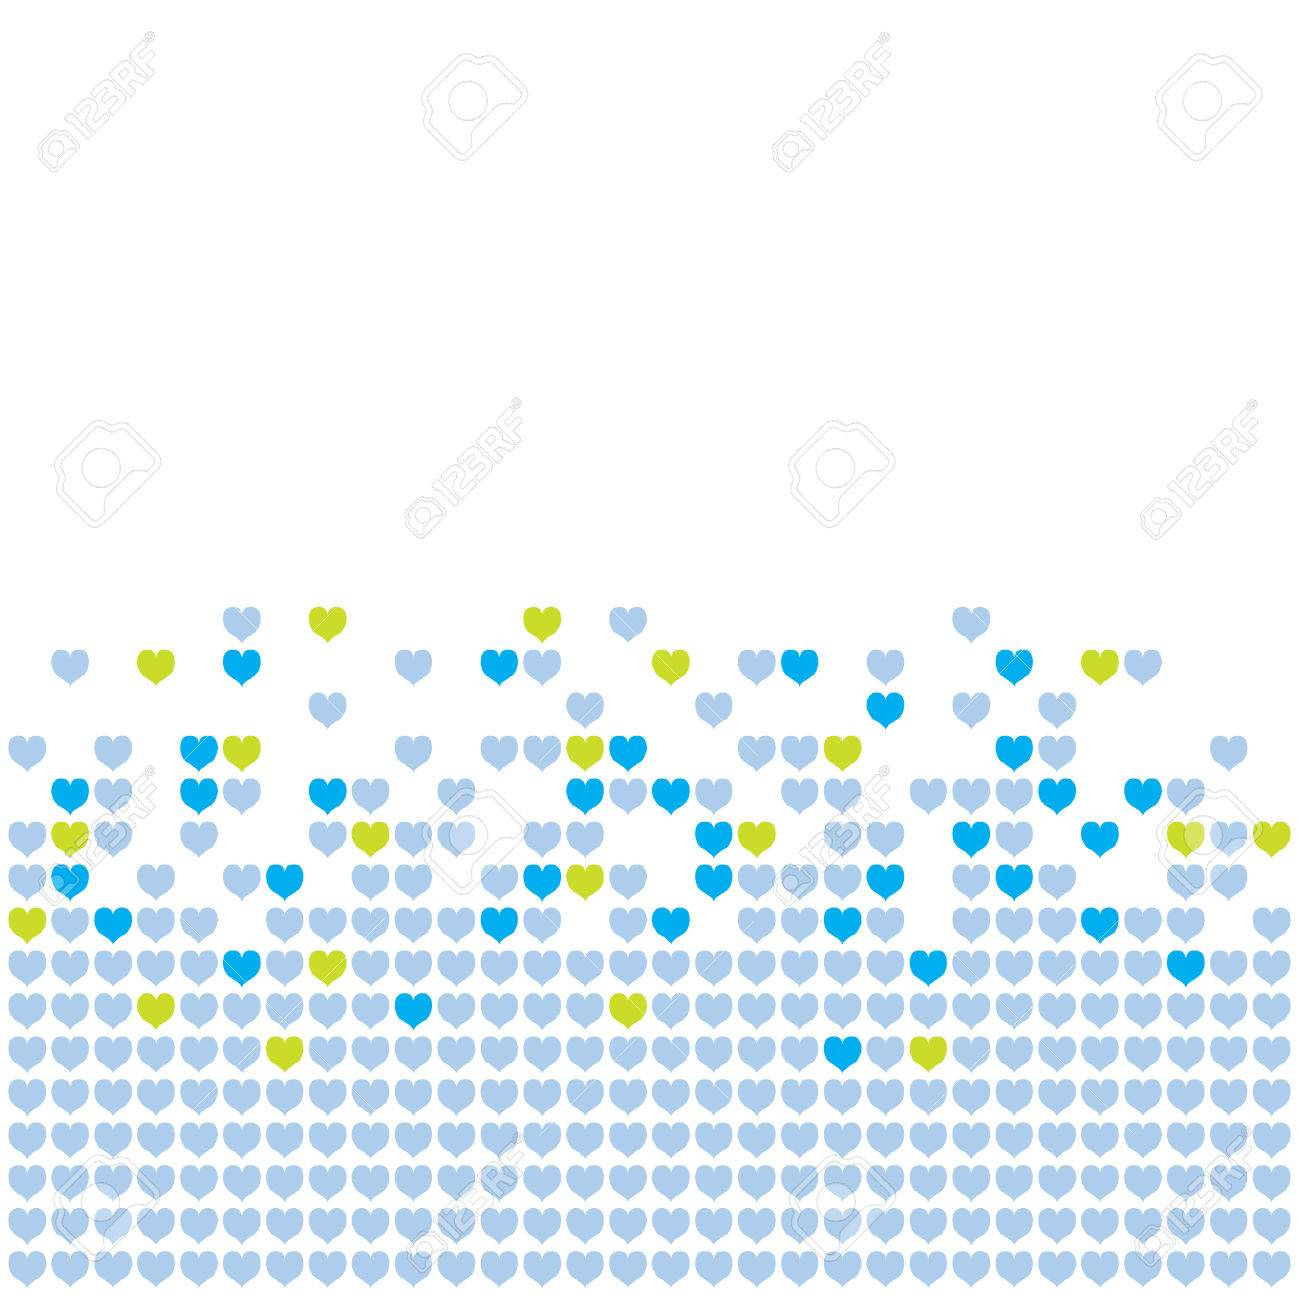 Colored hearts in a mosaic-style pattern. Stock Vector - 8348510